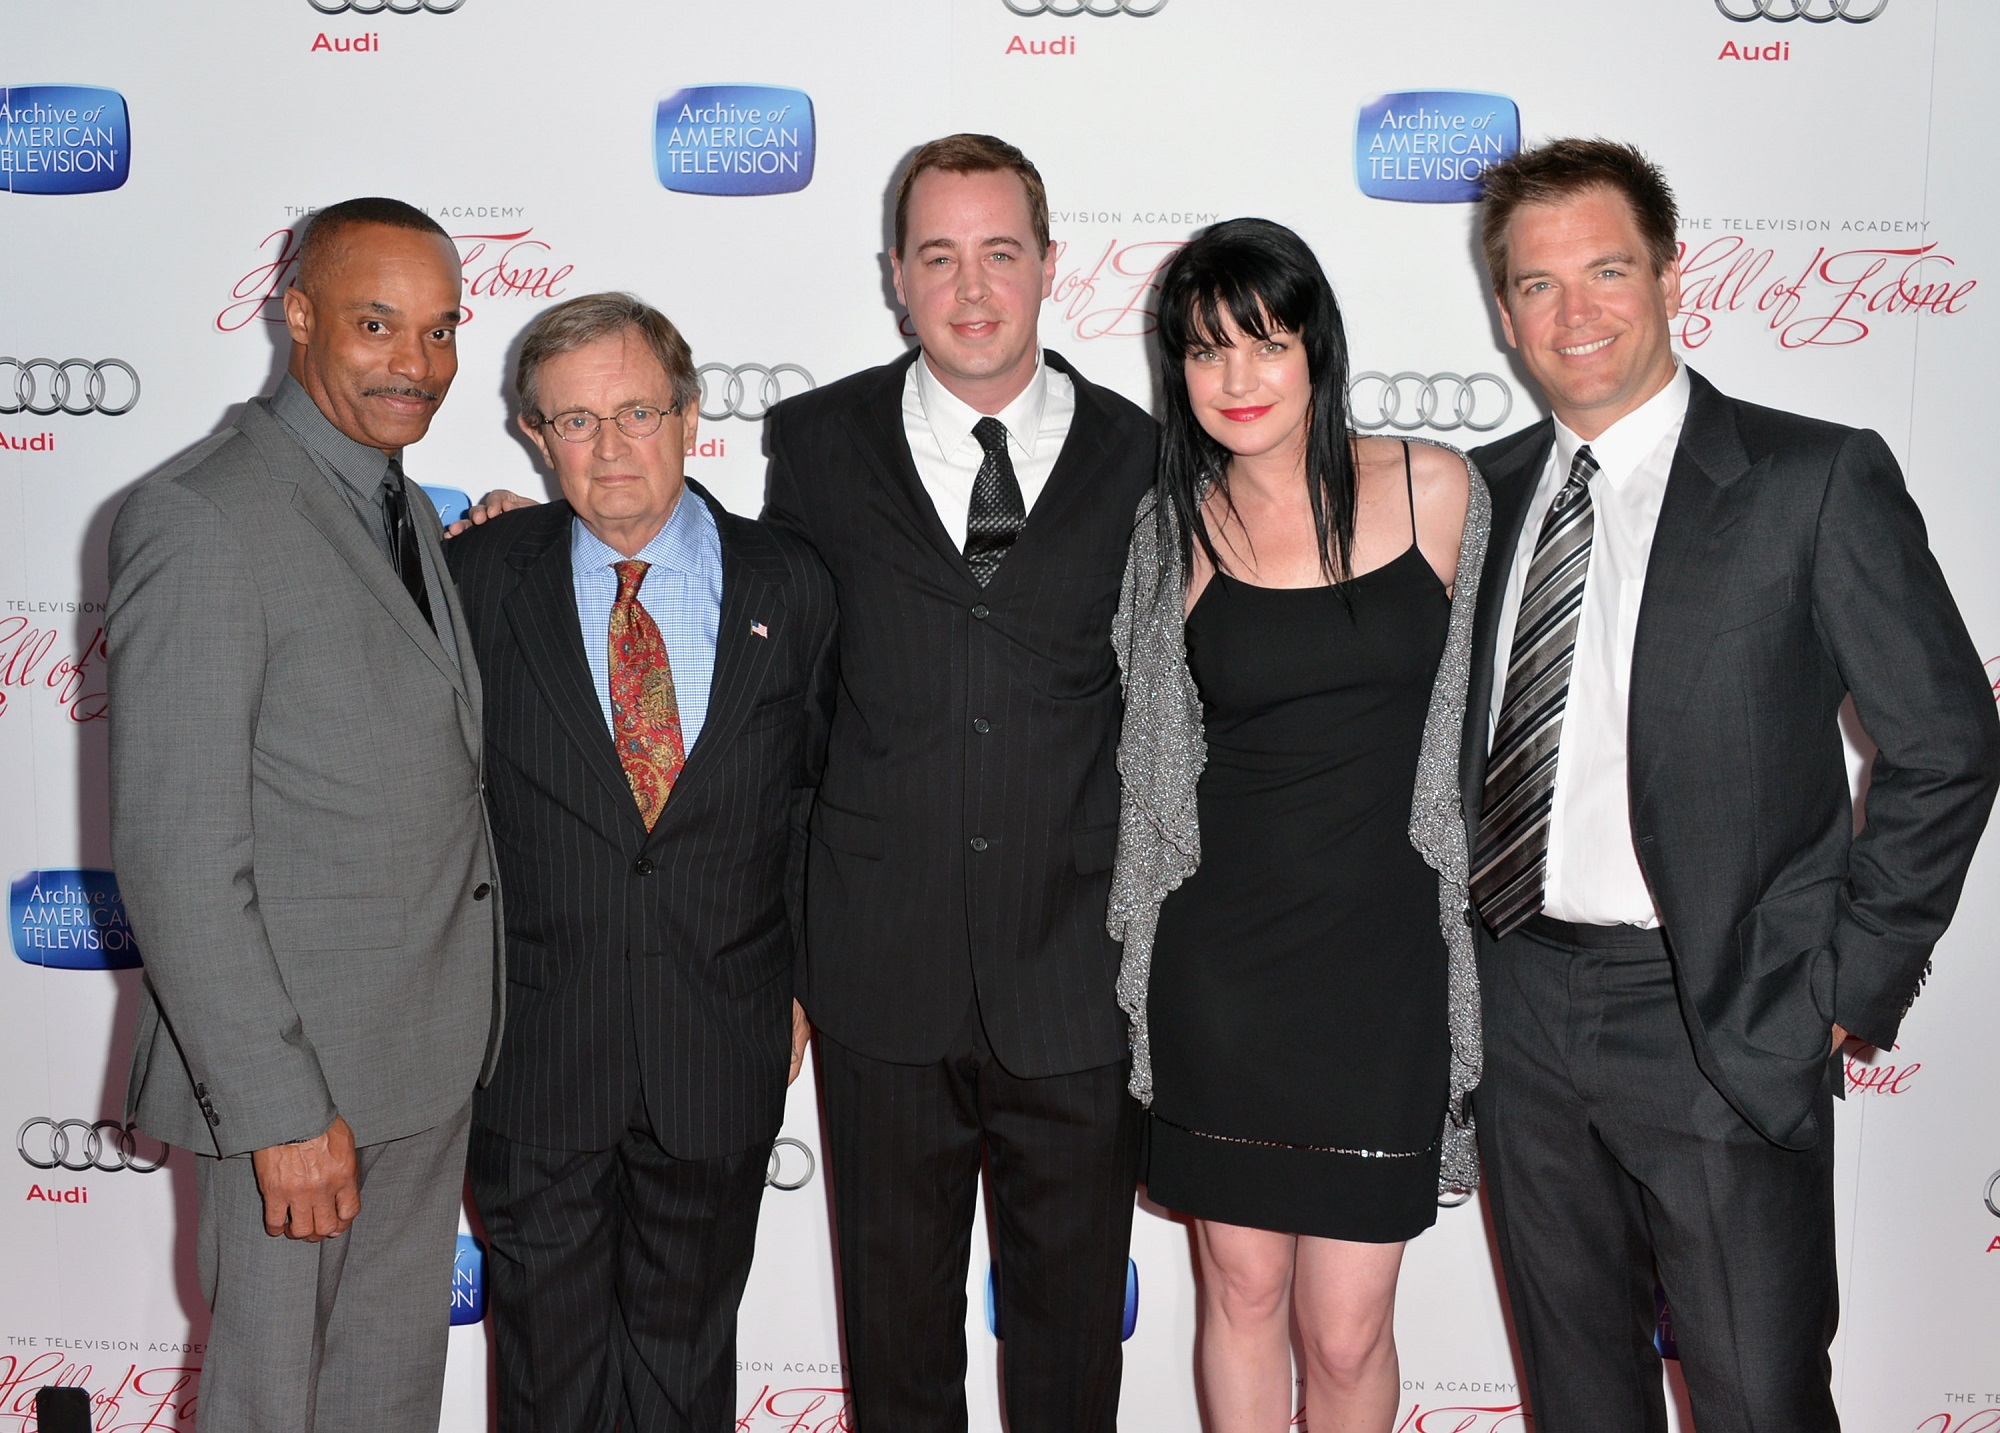 Rocky Carroll, David McCallum, Sean Murray, Pauley Perrette and Michael Weatherly.